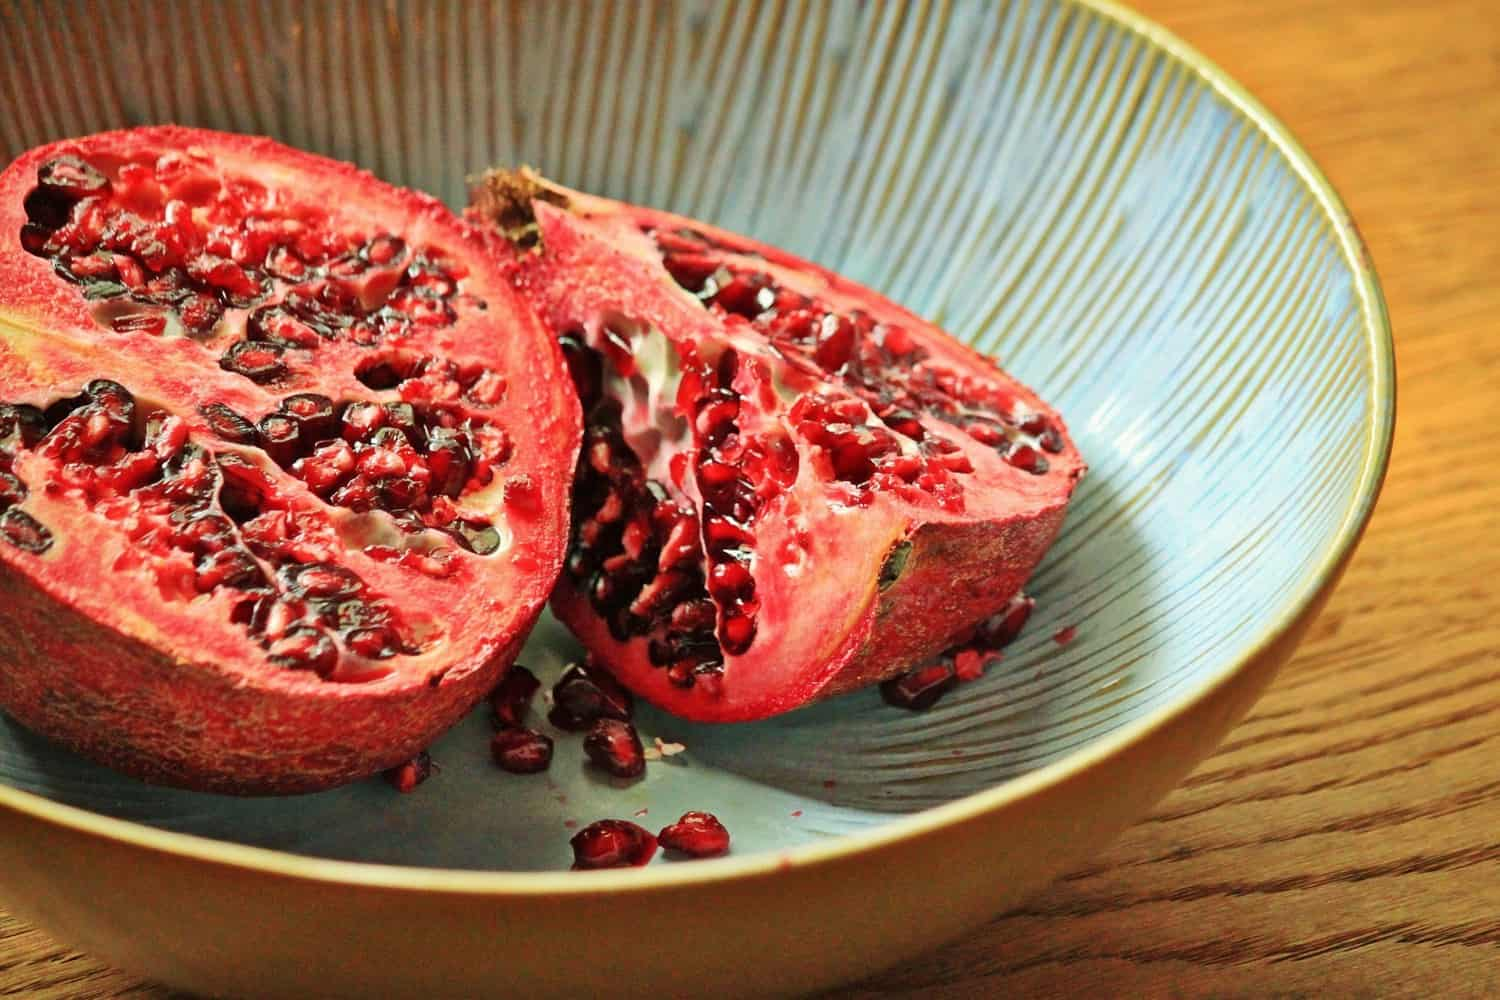 Halved pomegranate.